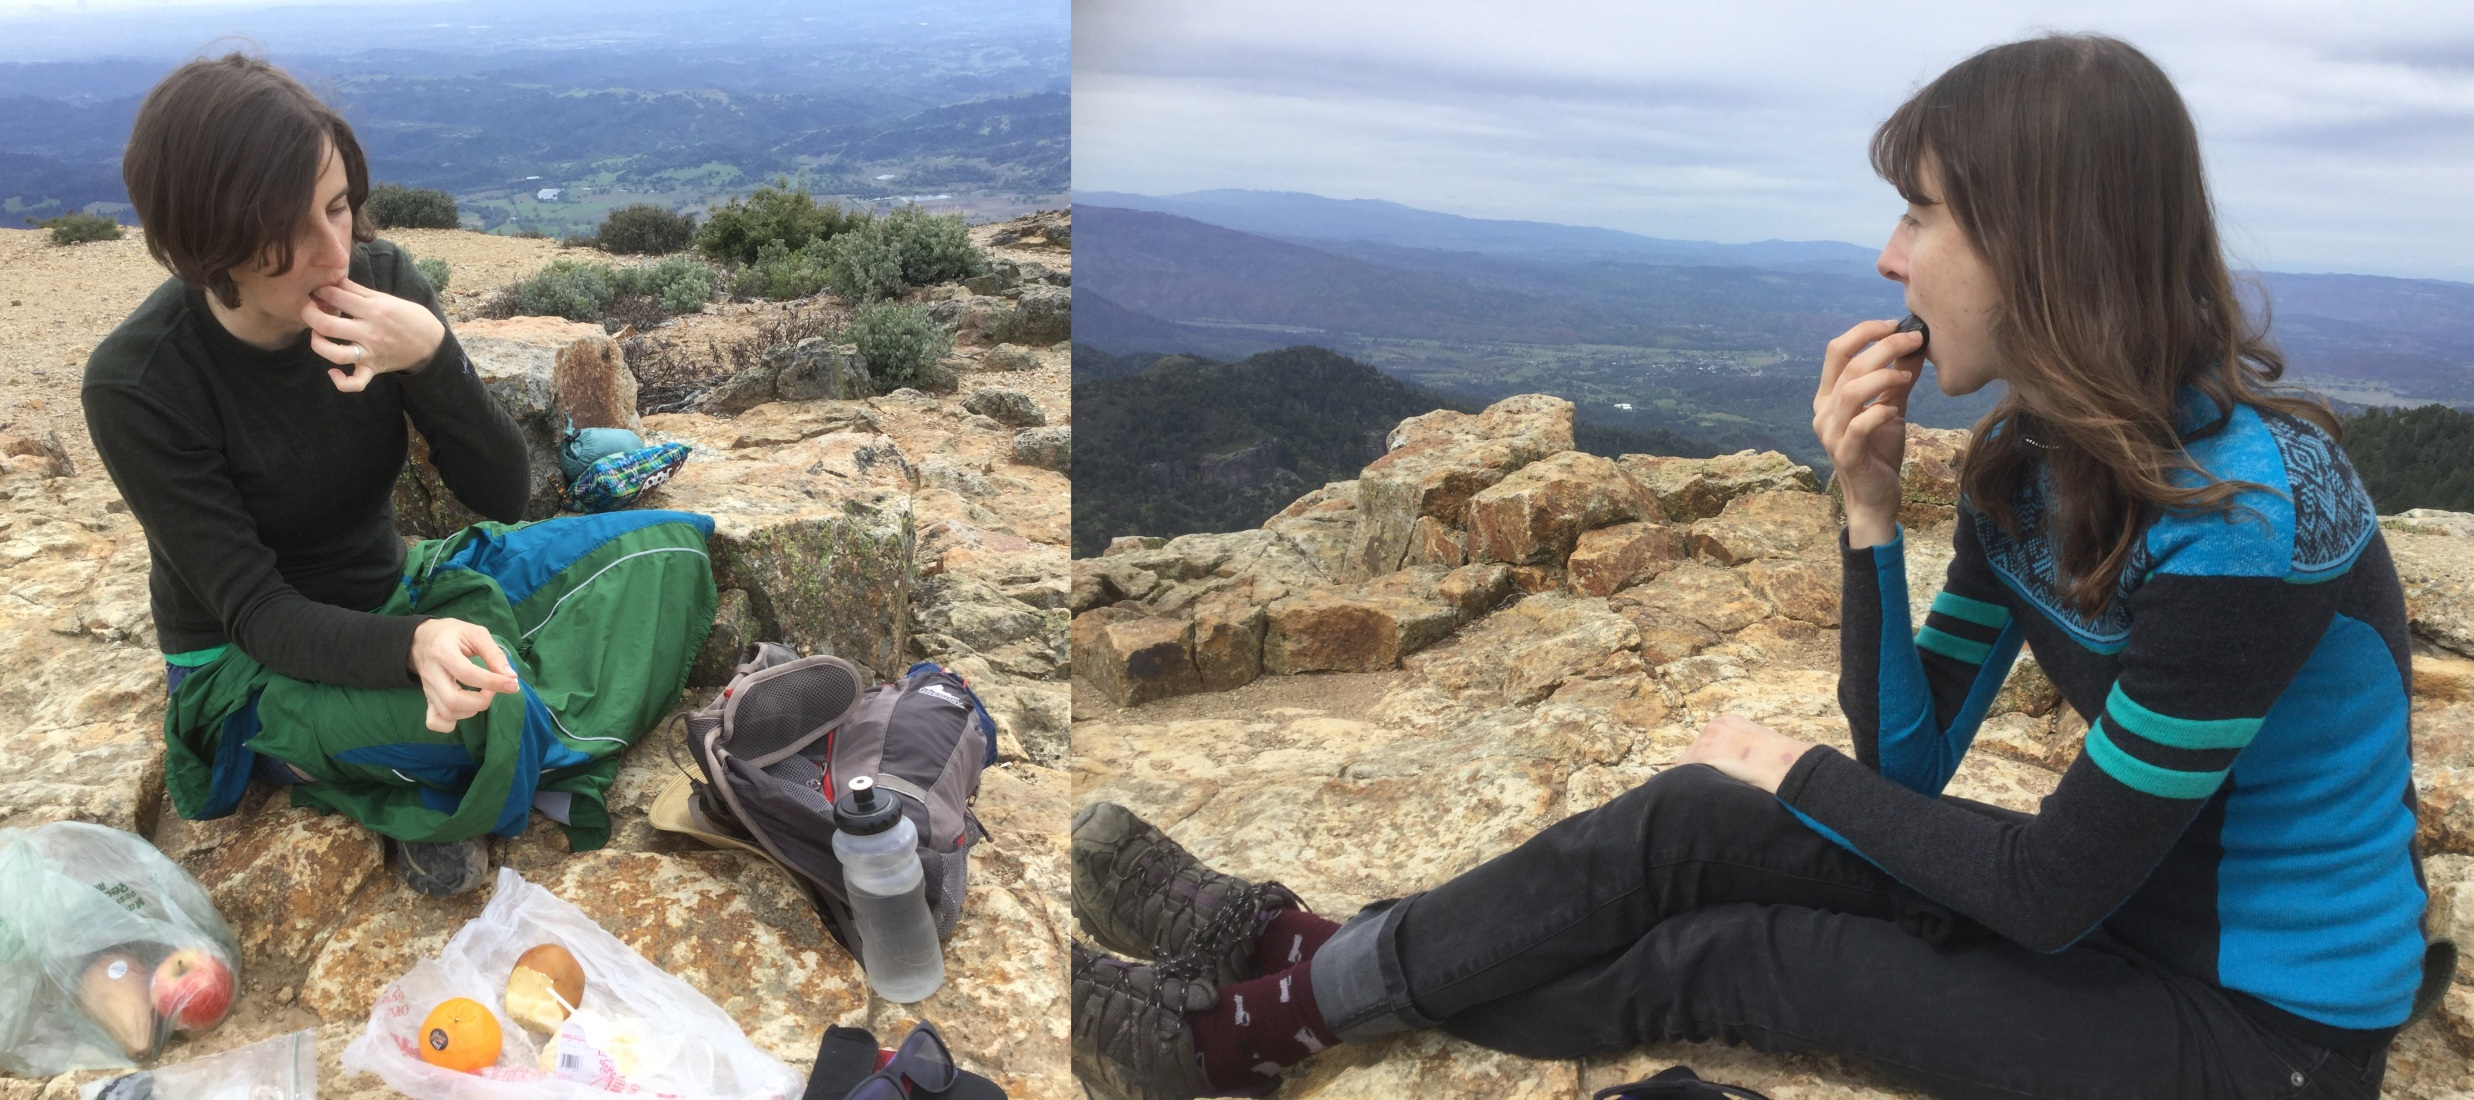 The flat rocks at the peak make a perfect place for a picnic on Mount Saint Helena, CA, 2017 Amy Cools.jpg